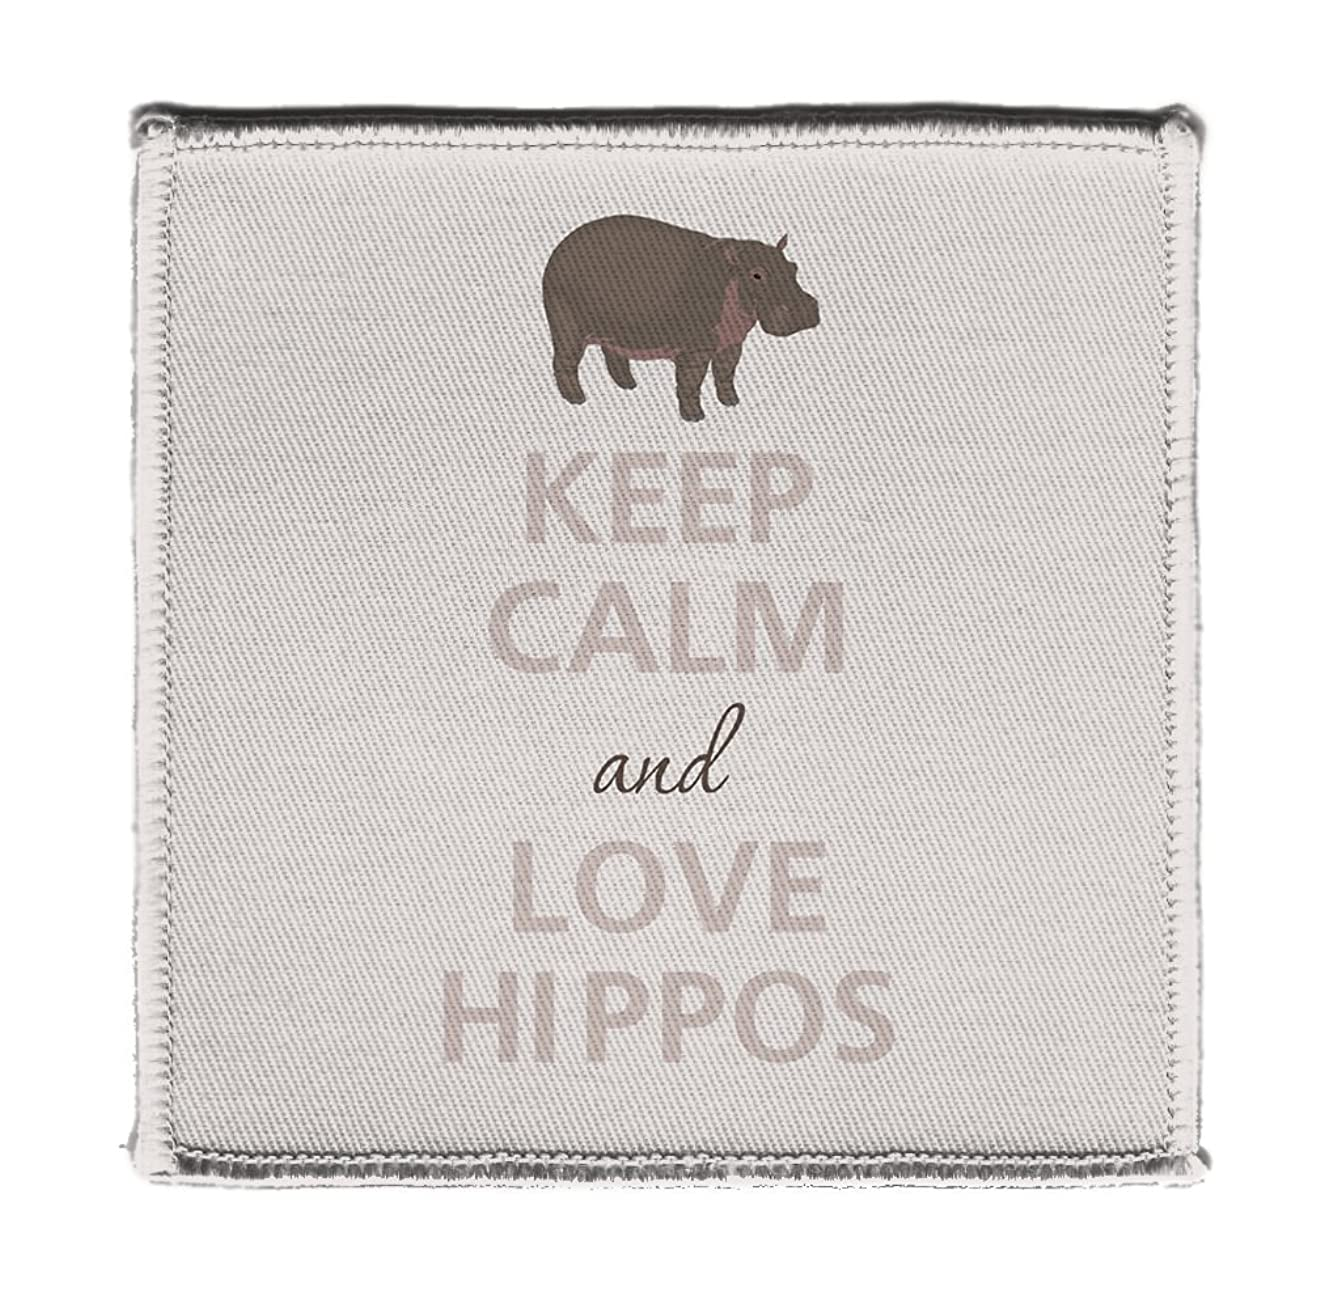 Keep Calm AND LOVE HIPPOS HIPPOPOTAMUS - Iron on 4x4 inch Embroidered Edge Patch Applique